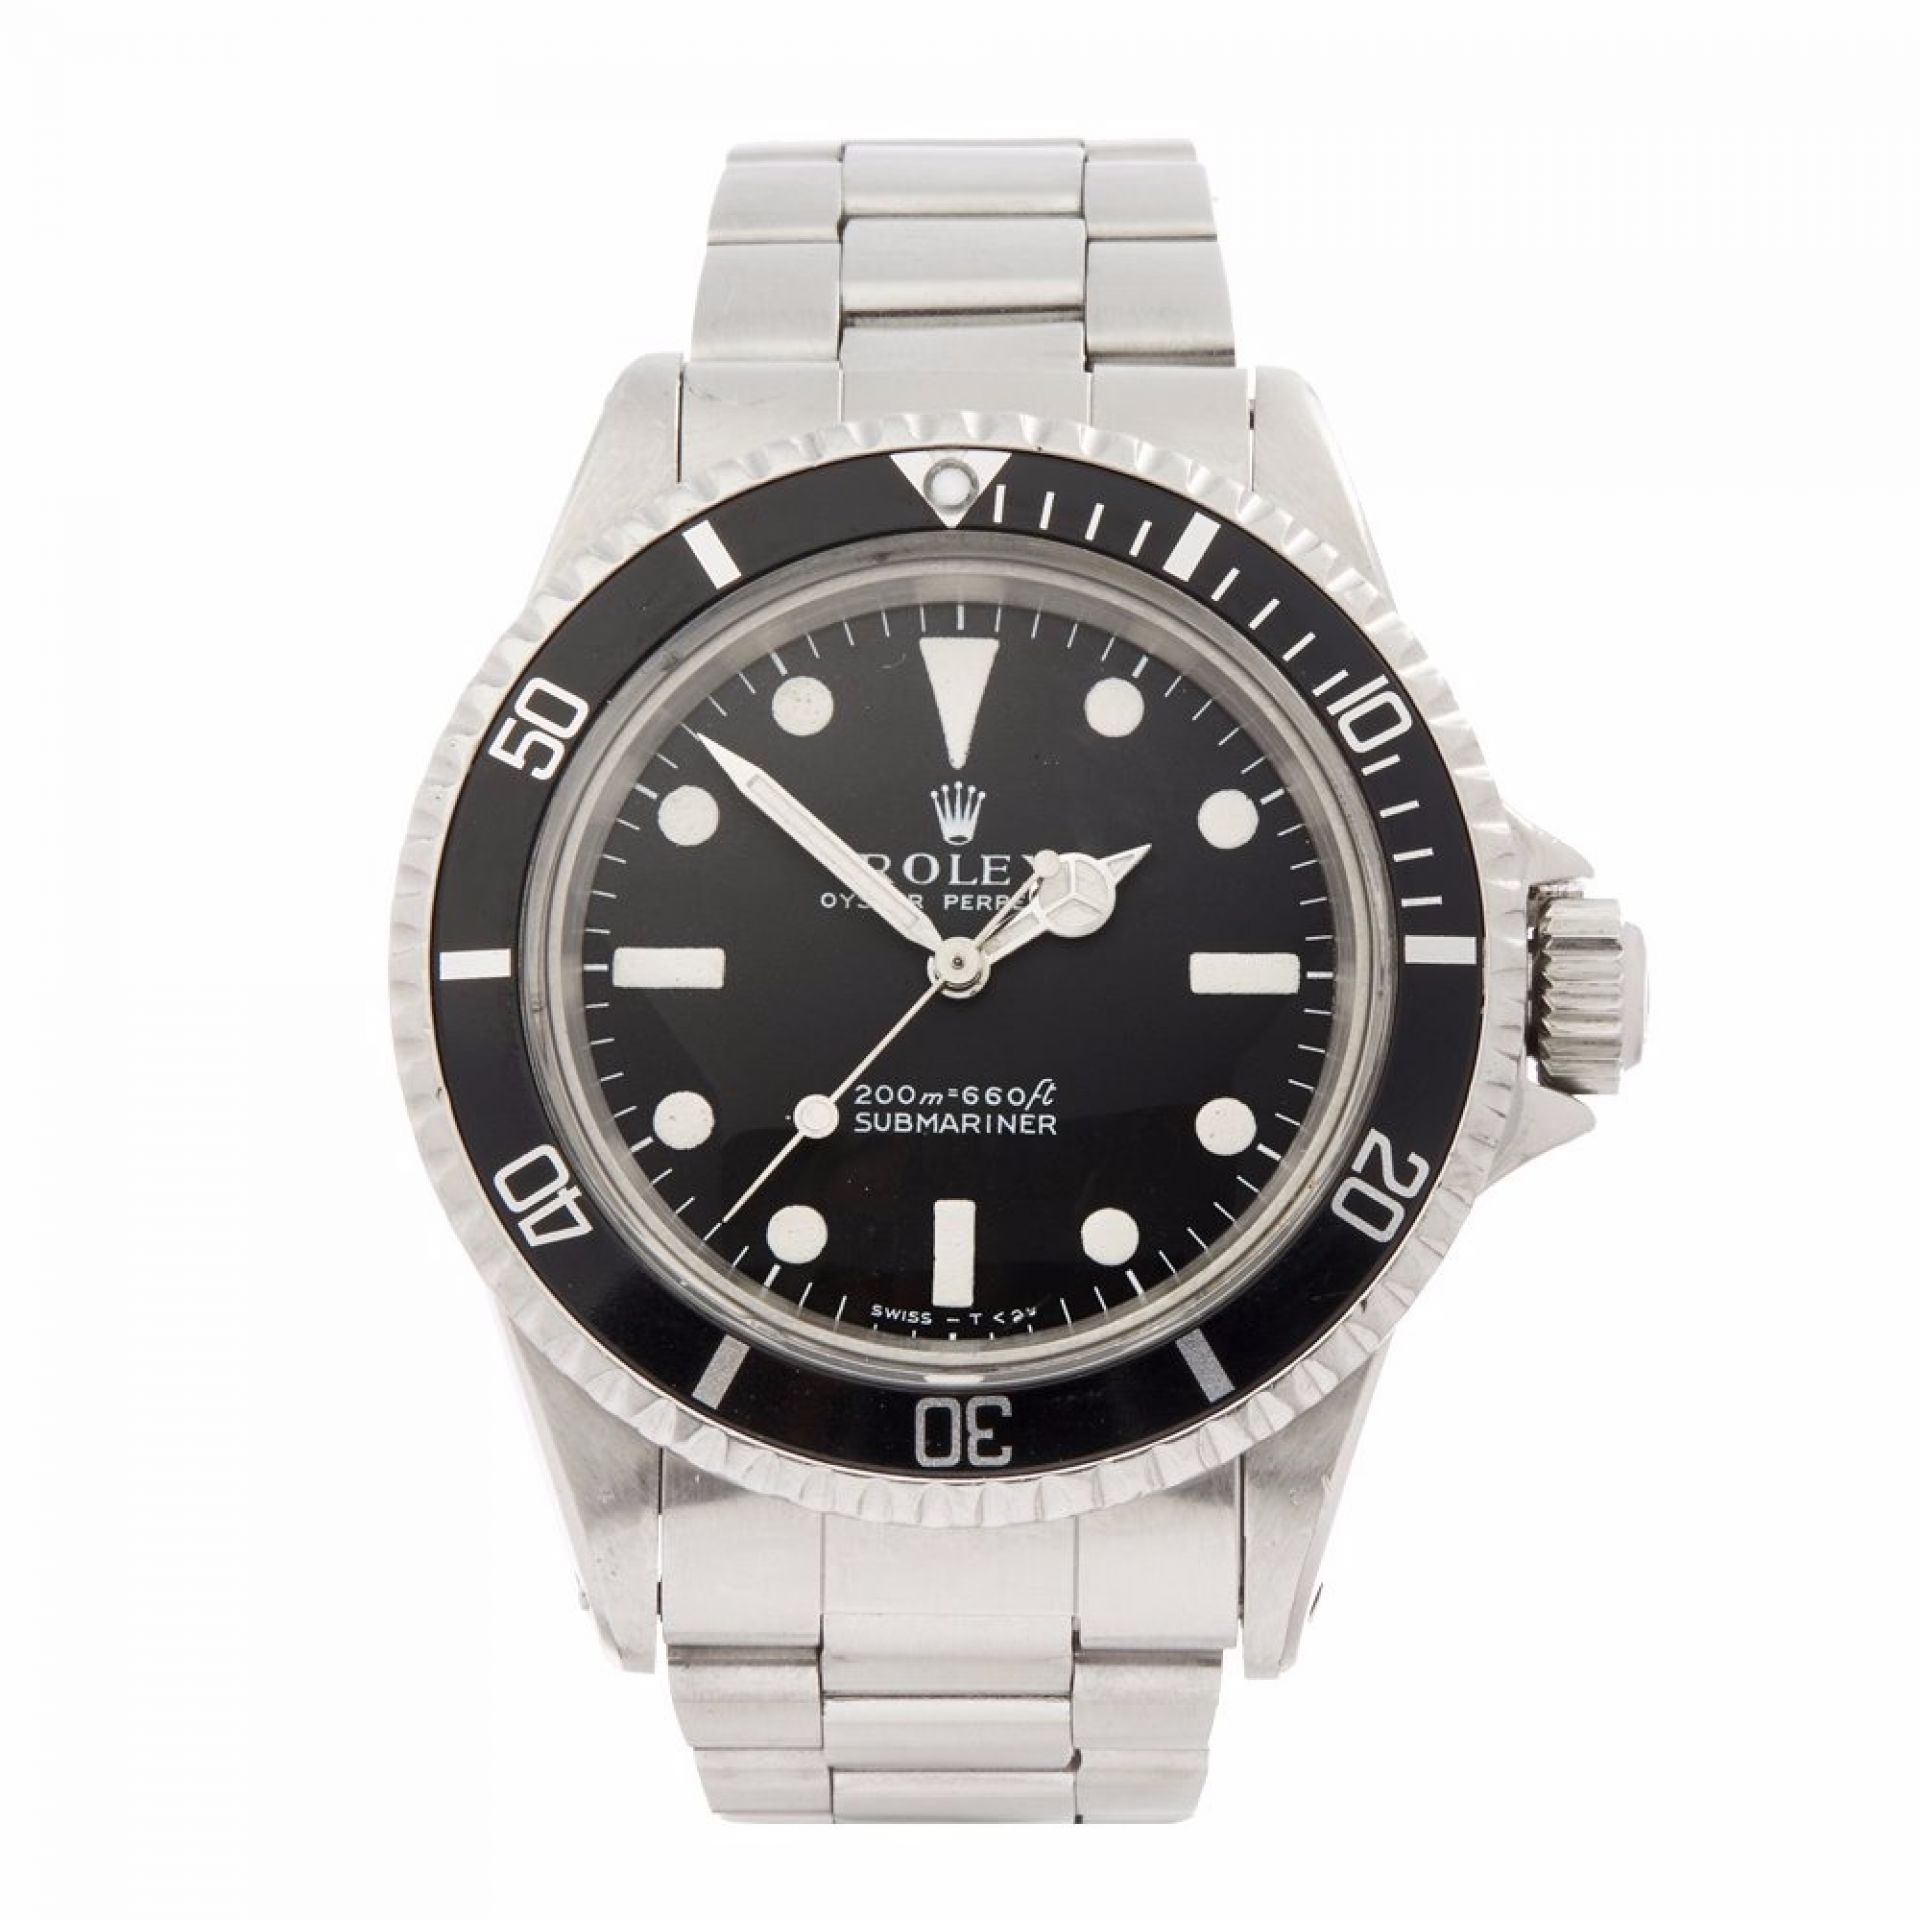 ROLEX SUBMARINER METERS FIRST STAINLESS STEEL MEN'S 5513